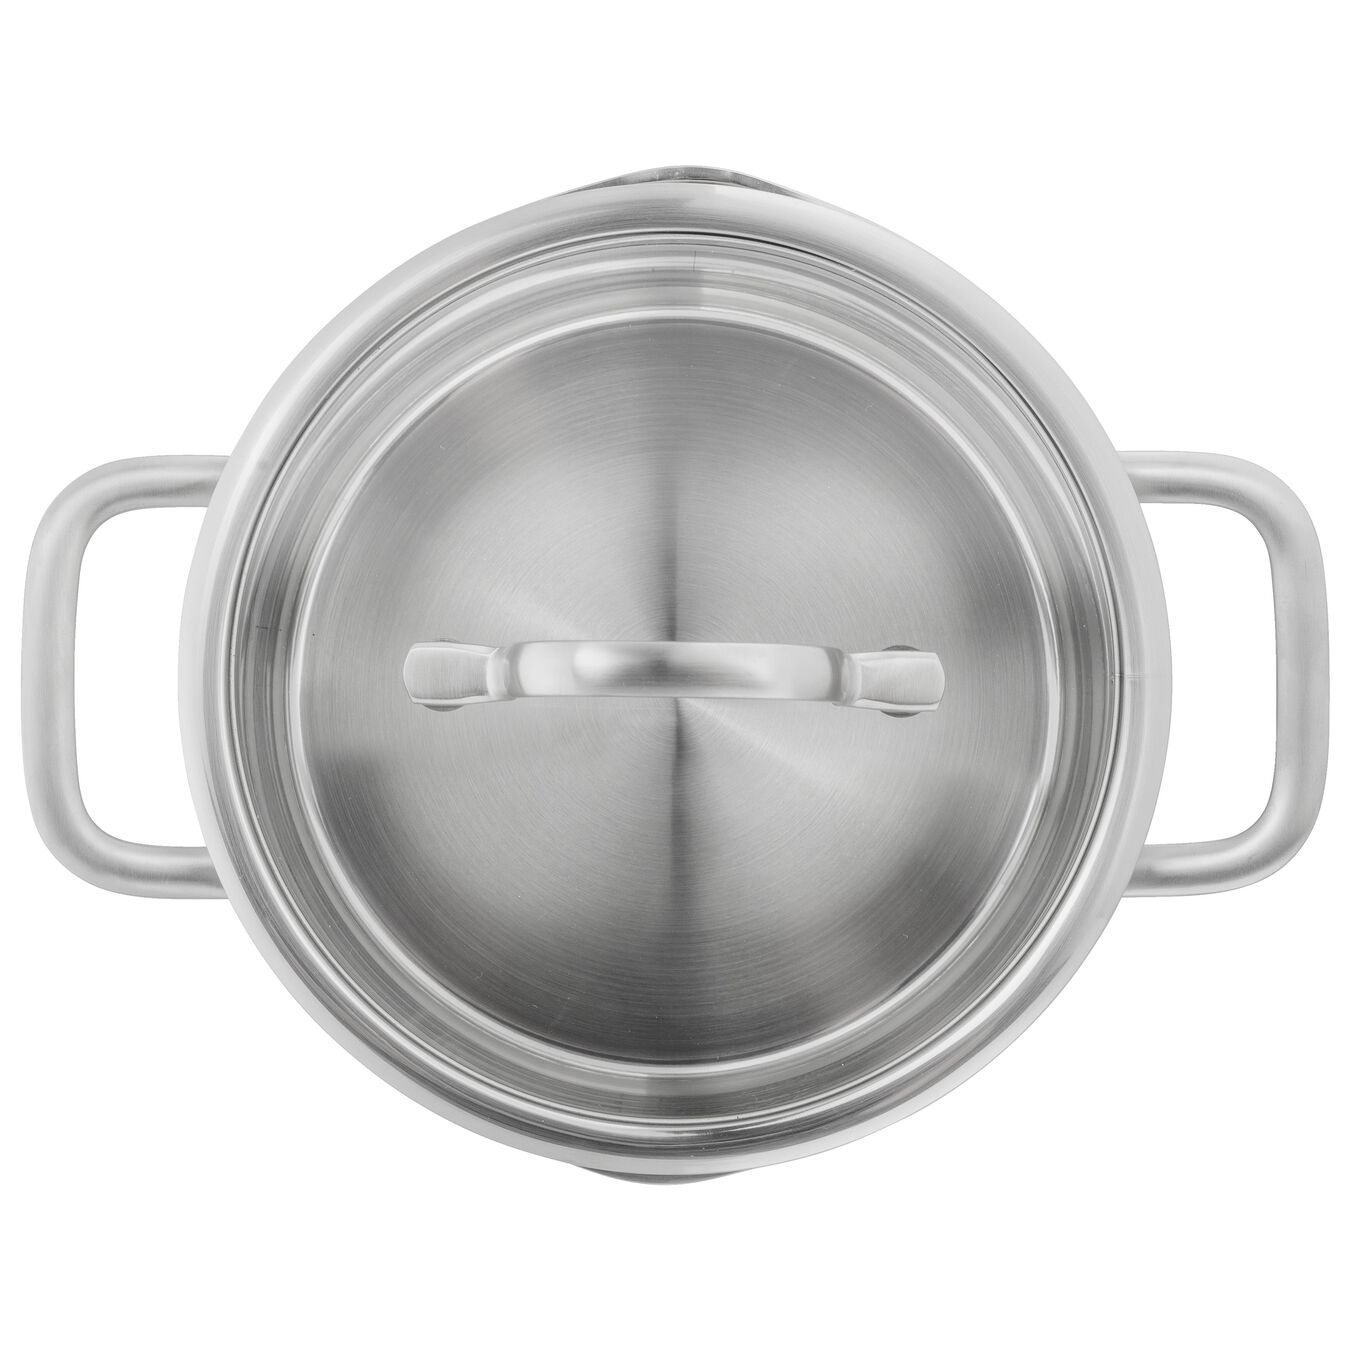 9 Piece Cookware Set , 5 Piece | round | stainless steel,,large 2